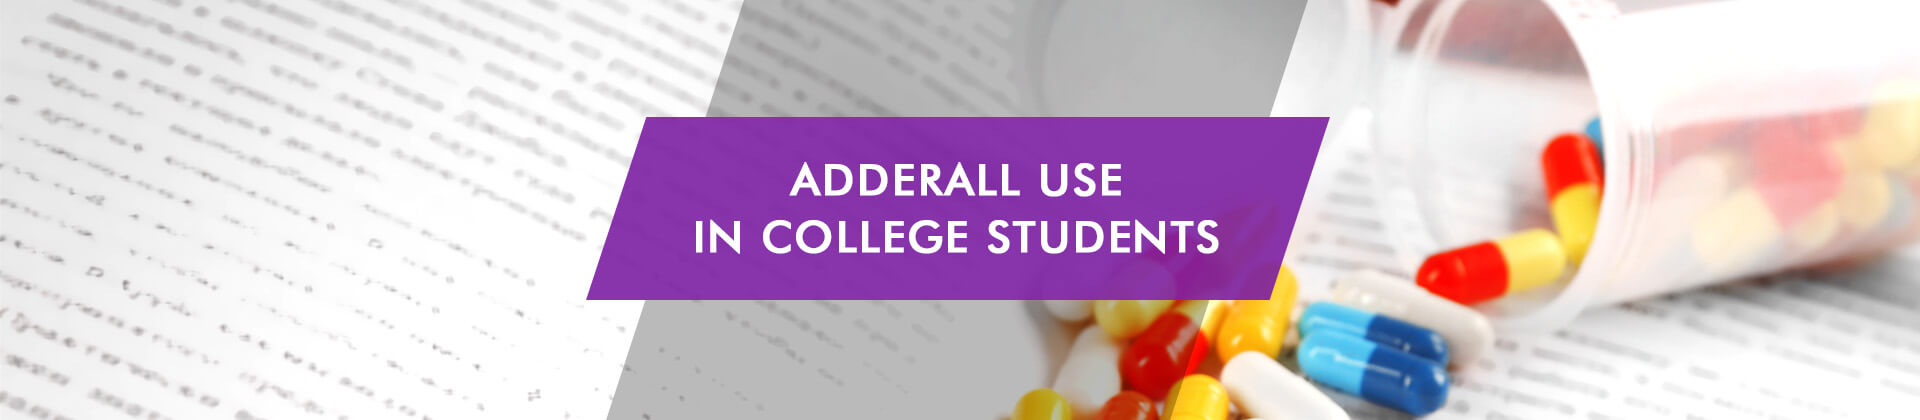 Adderall Use At Cornellaway Of Life For >> Adderall Abuse In College Students Dangers Of Stimulant Use To Study